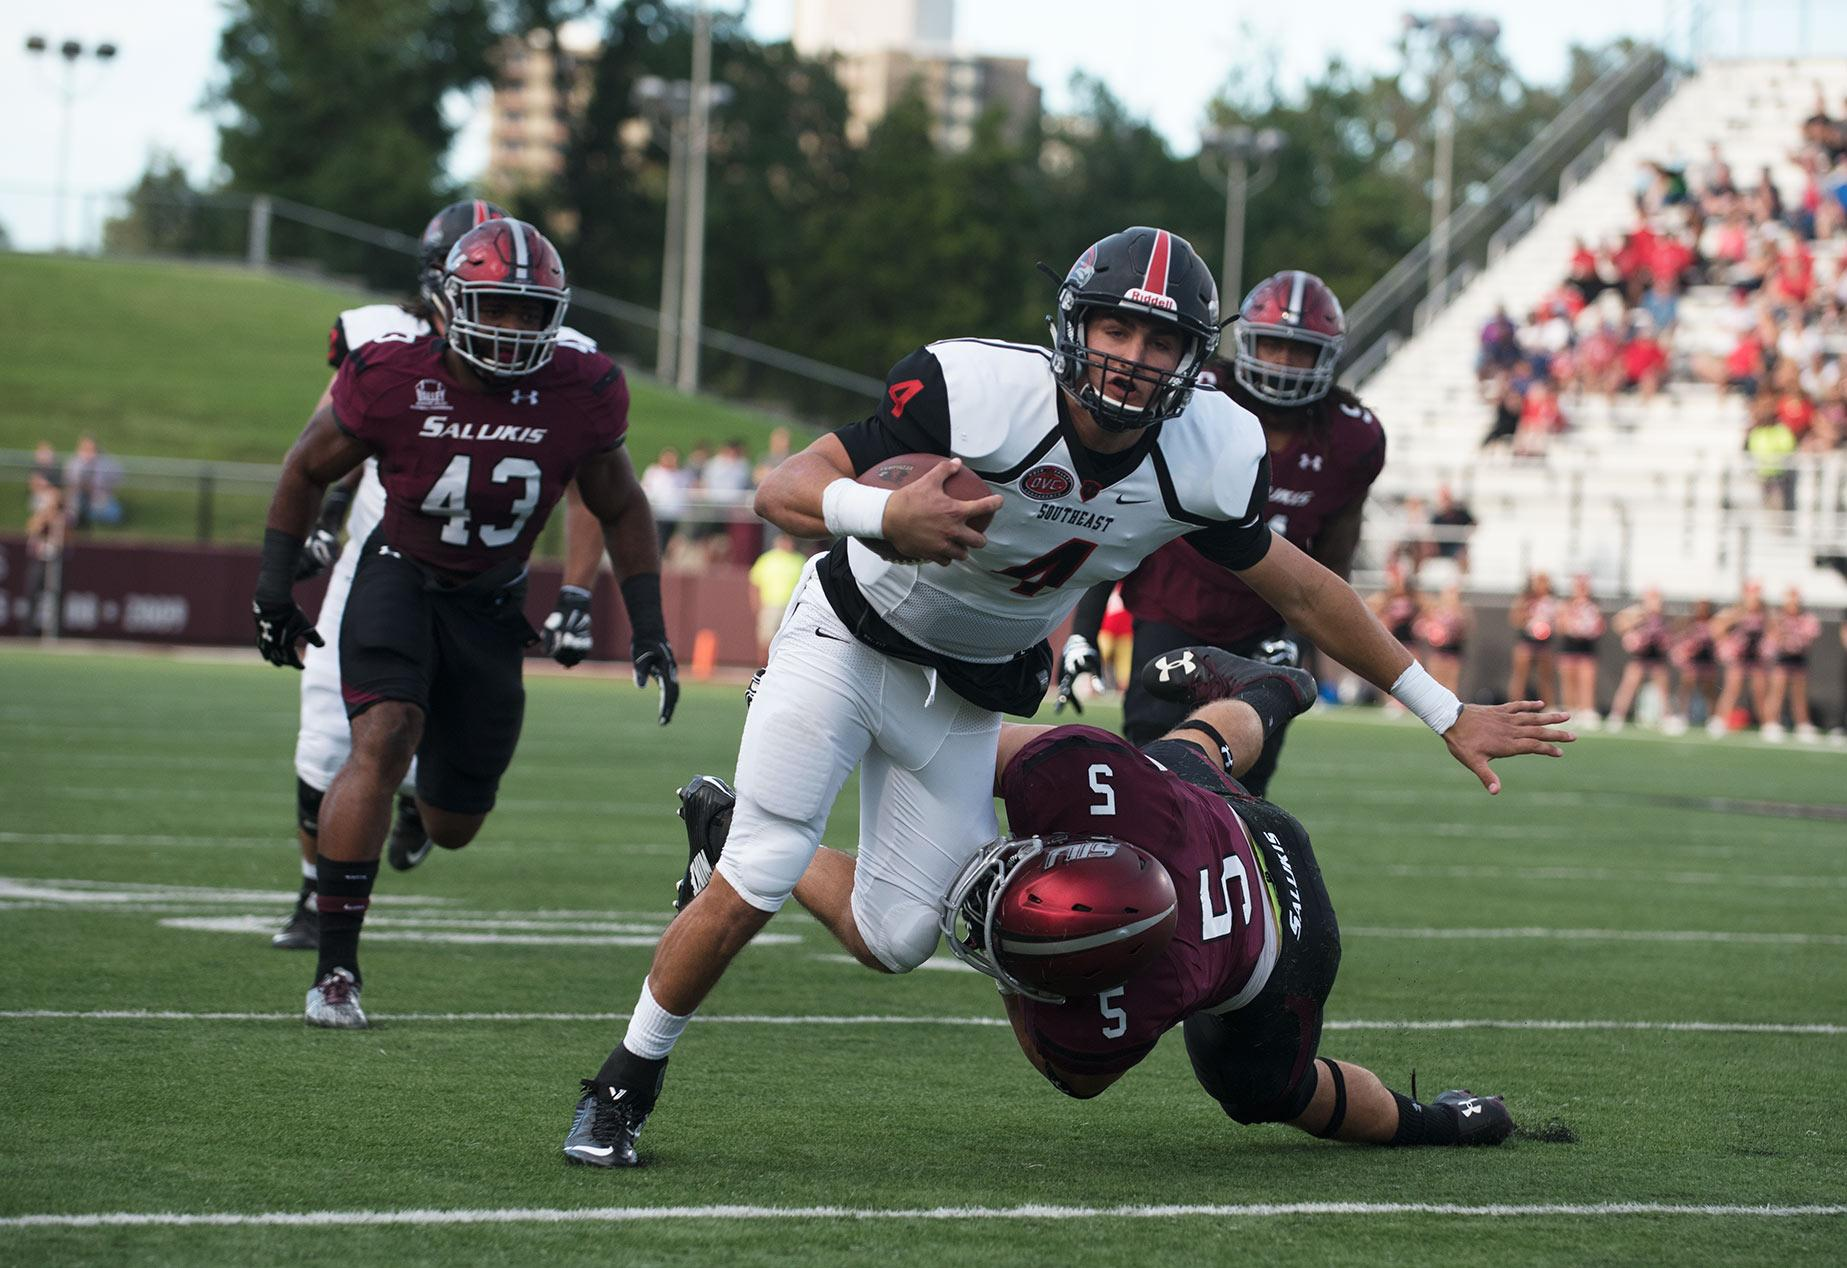 Saluki senior linebacker Chase Allen tackles SEMO junior quarterback Jesse Hosket during the first half of the Salukis' matchup against the Redhawks on Saturday, Sept. 10, 2016, at Saluki Stadium. (Jacob Wiegand | @JacobWiegand_DE)